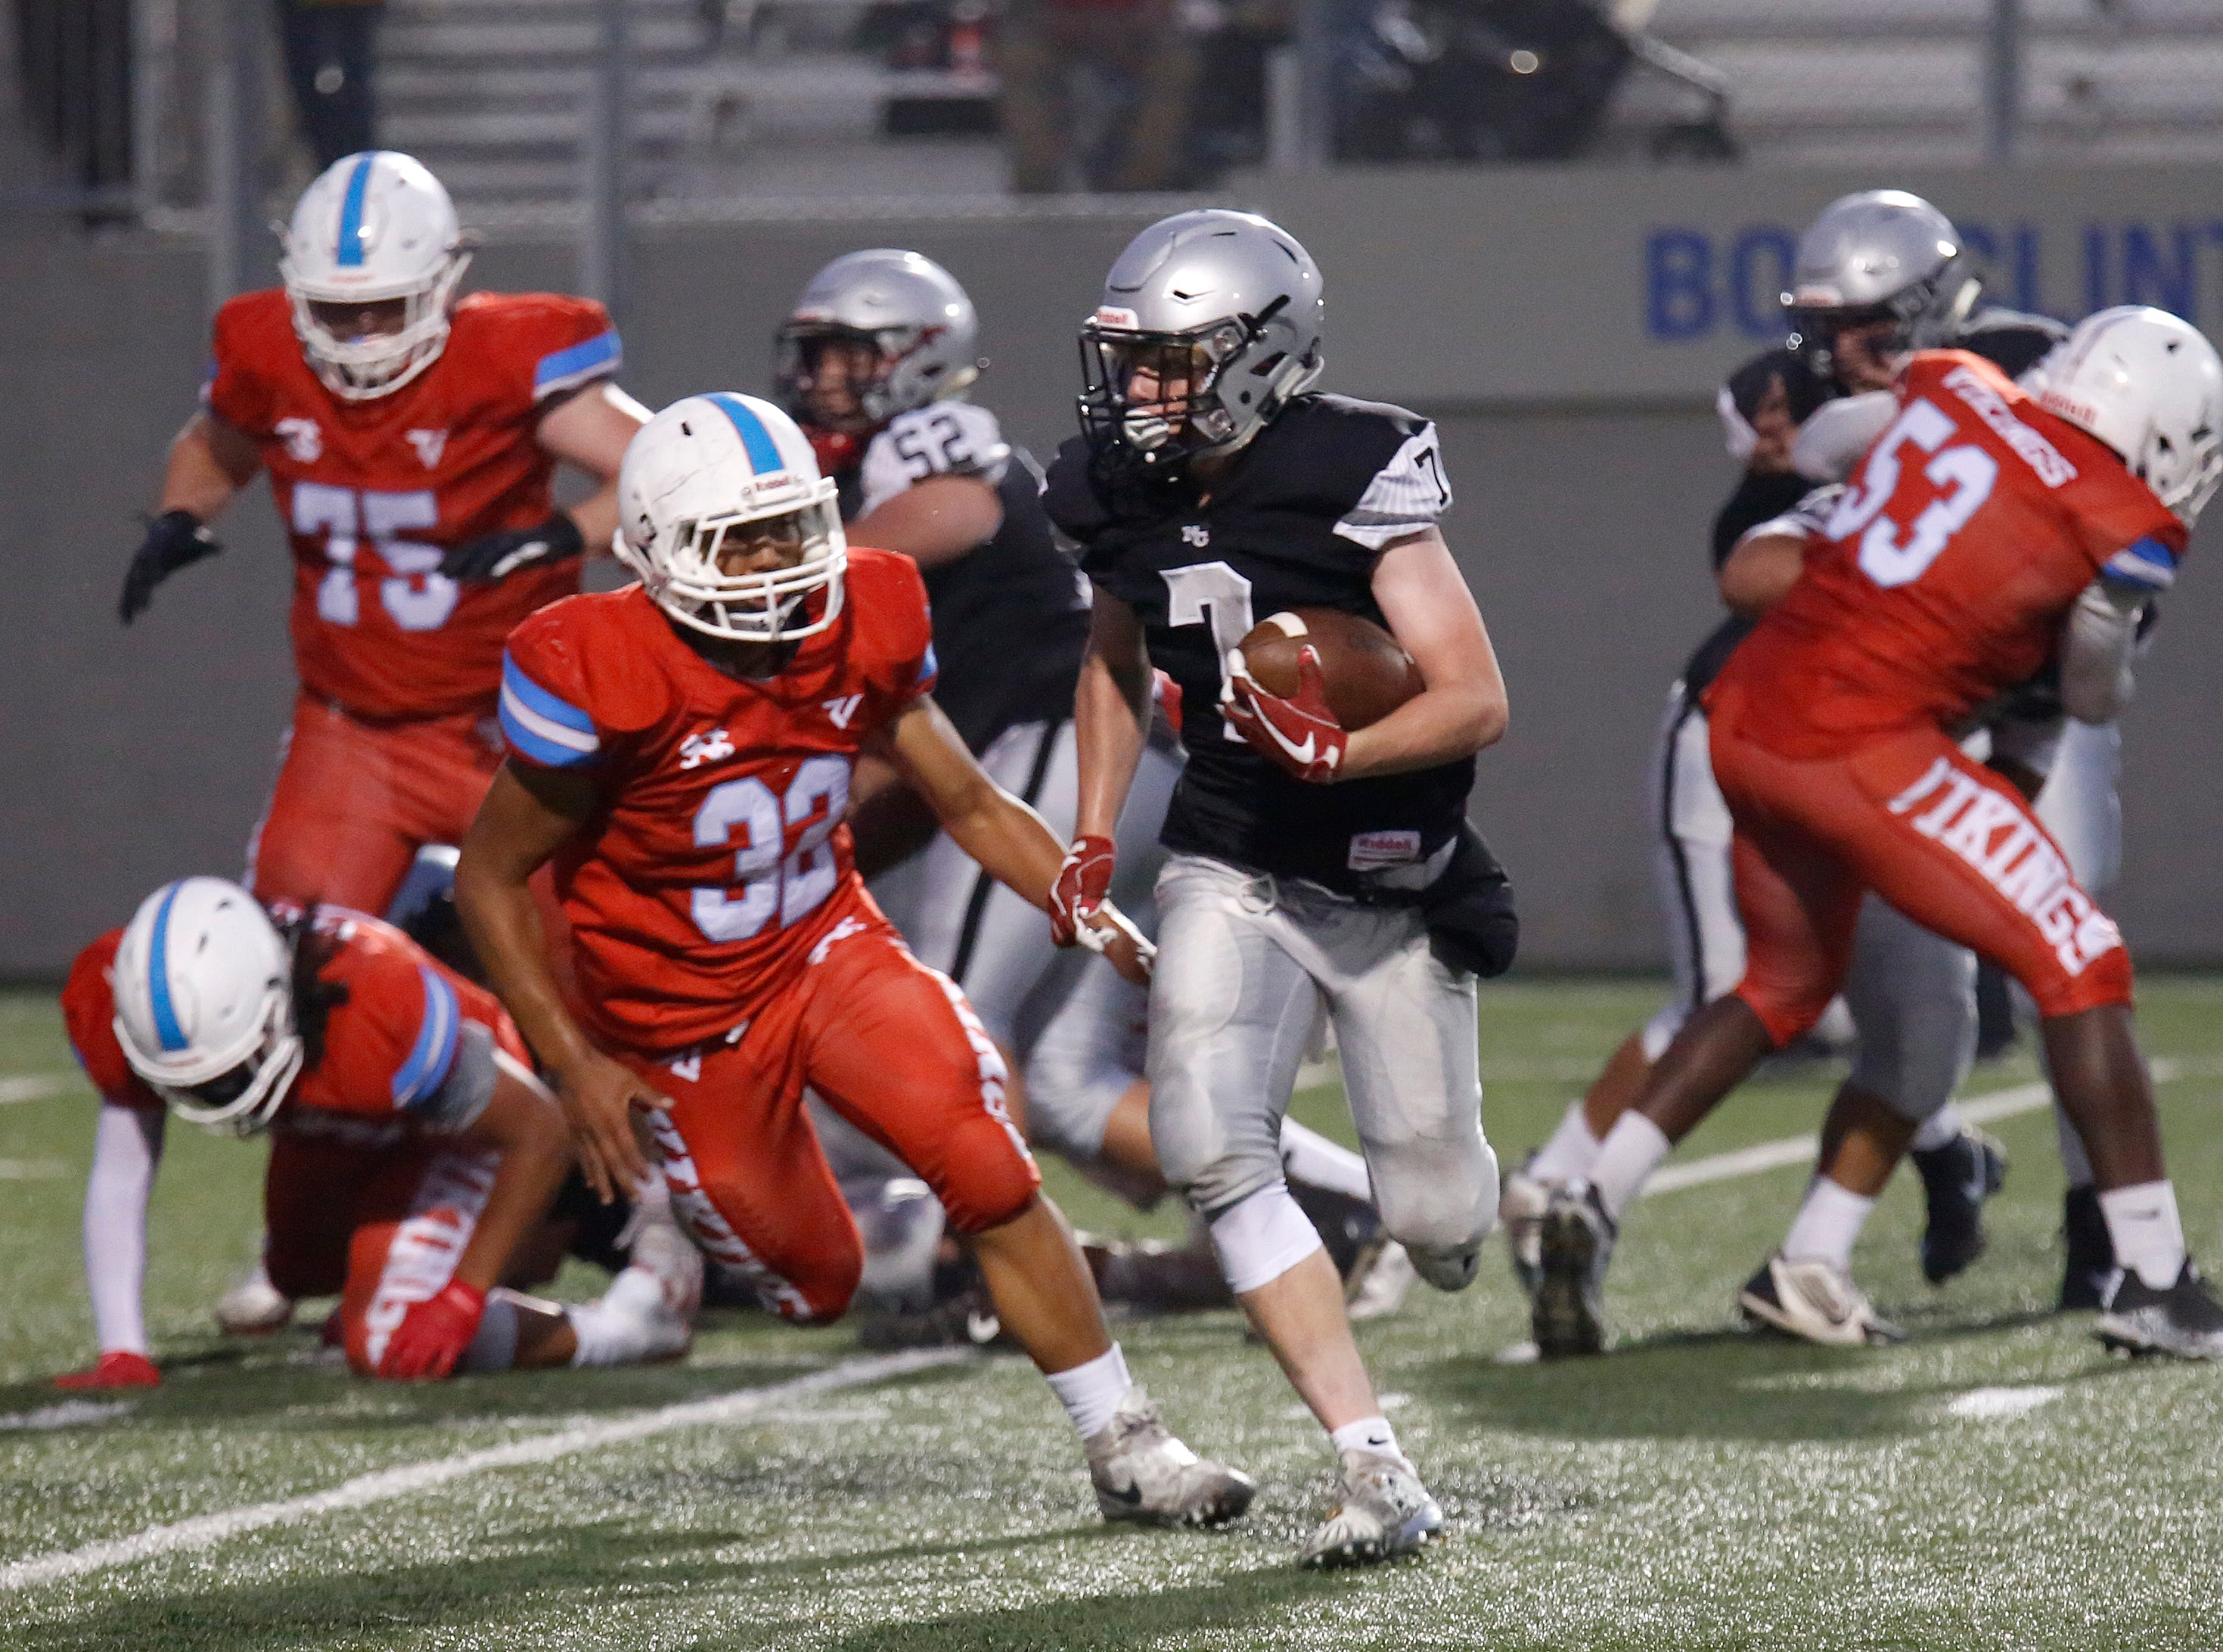 North Monterey County's Riley Anderson runs the ball against North Salinas during football at Rabobank Stadium in Salinas on Thursday August 23, 2018.